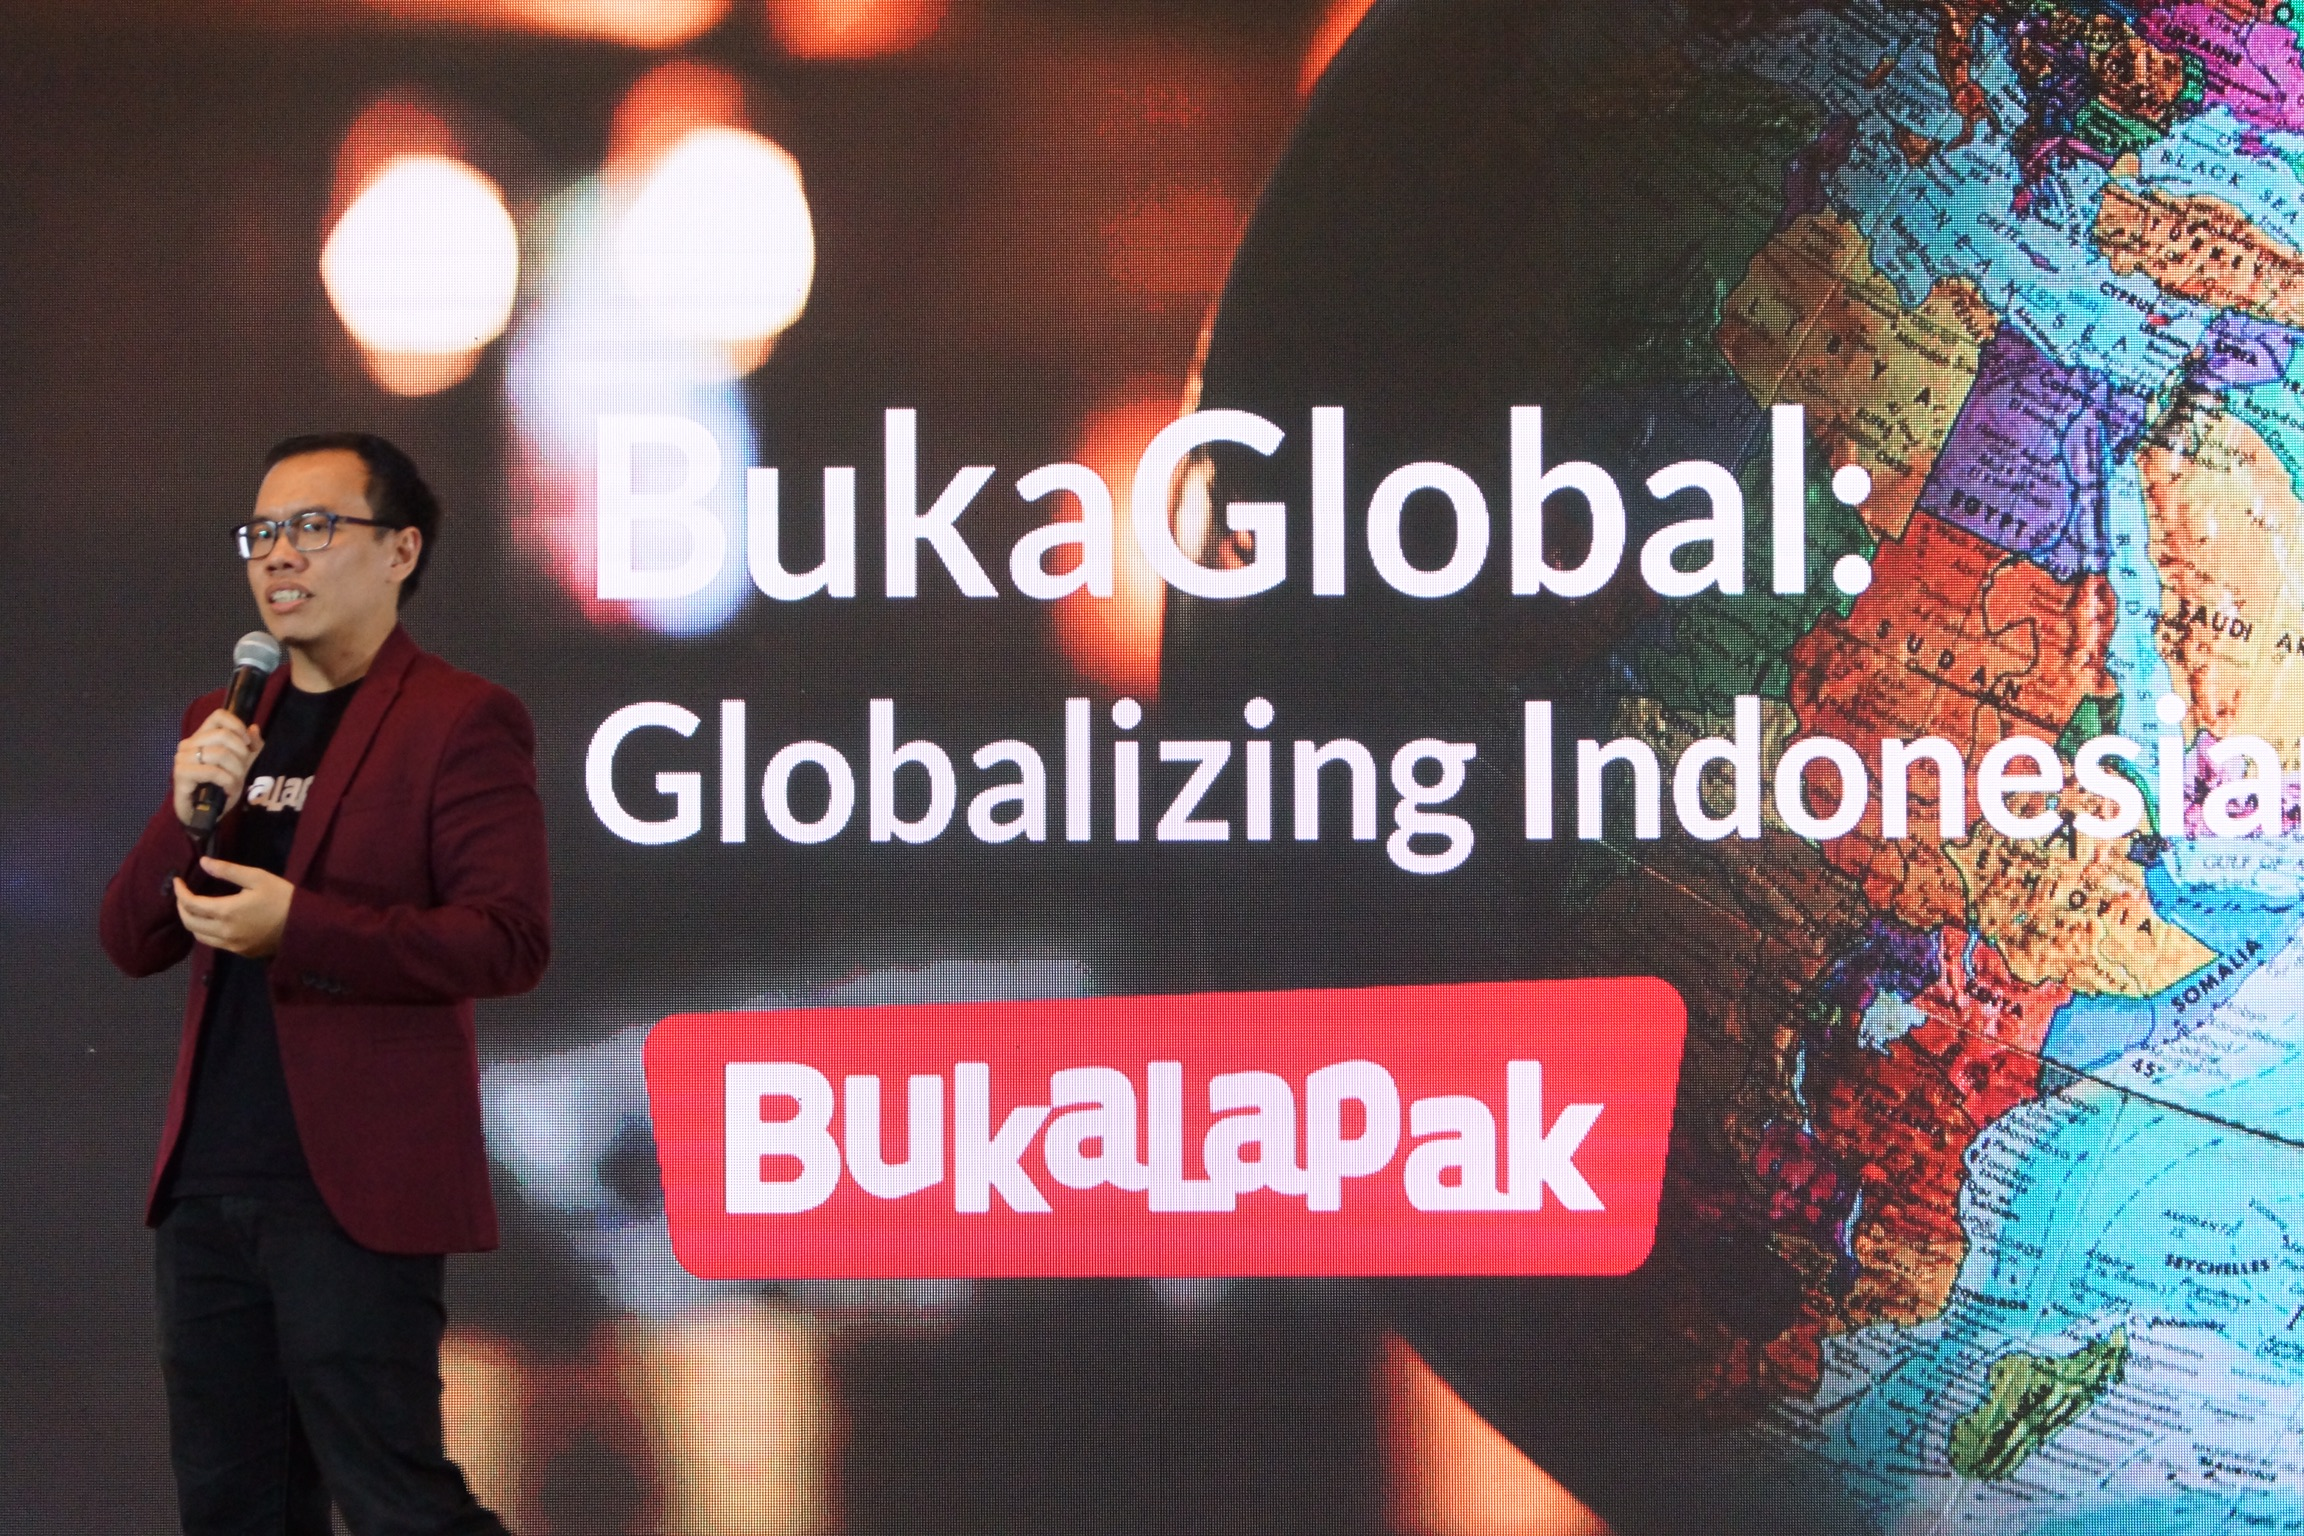 Why Bukalapak is opening its platform to international users